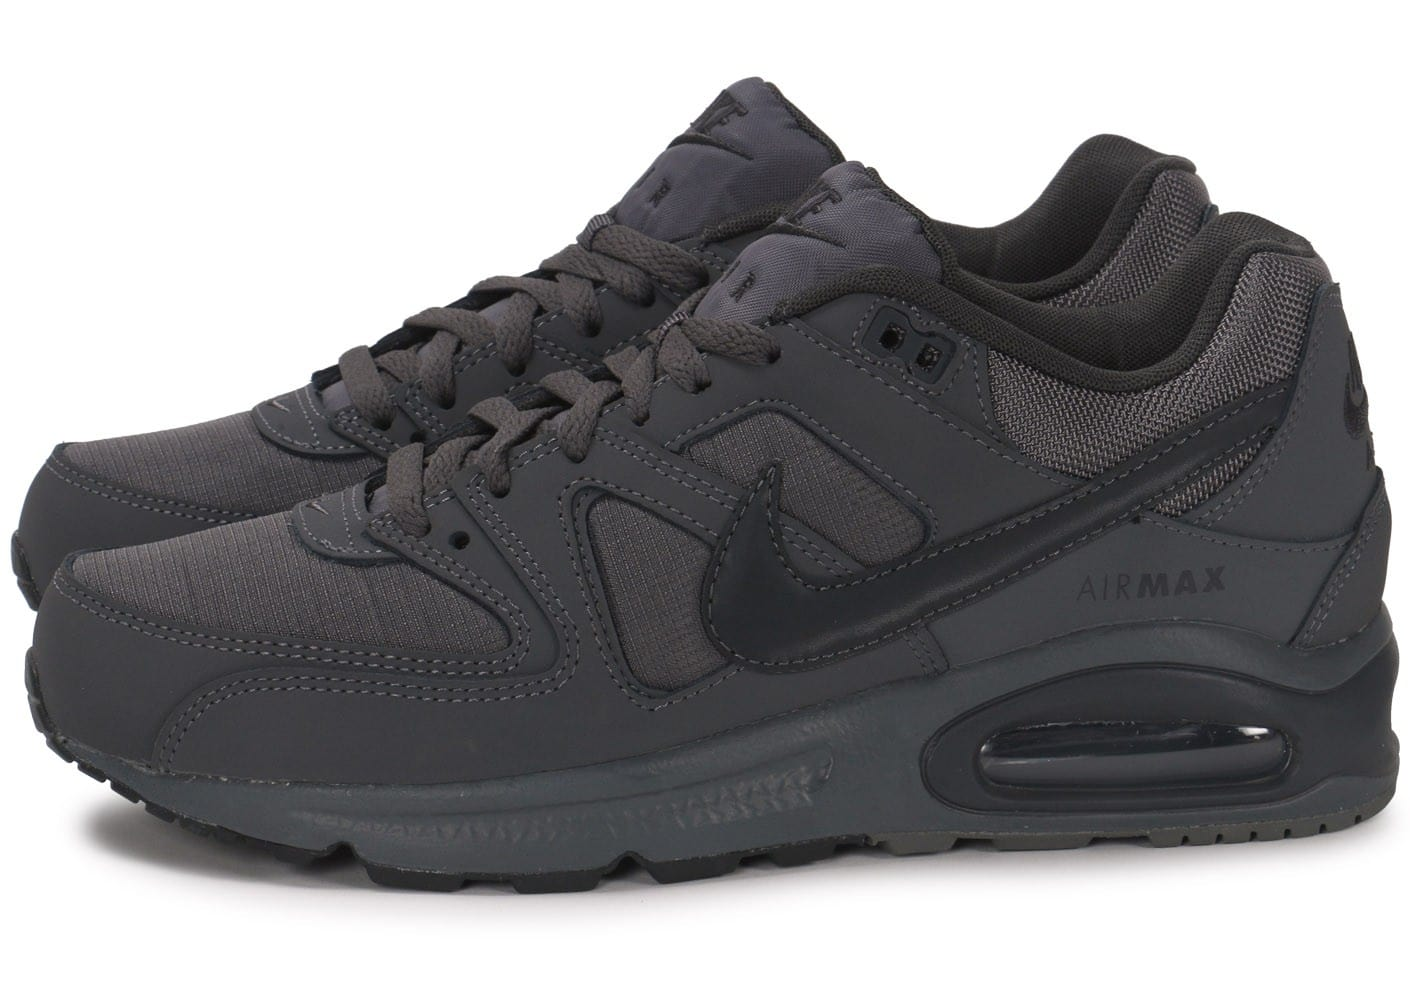 Air Command Anthracite Homme Nike Max Baskets Chaussures Chausport 2eIHWDE9Y